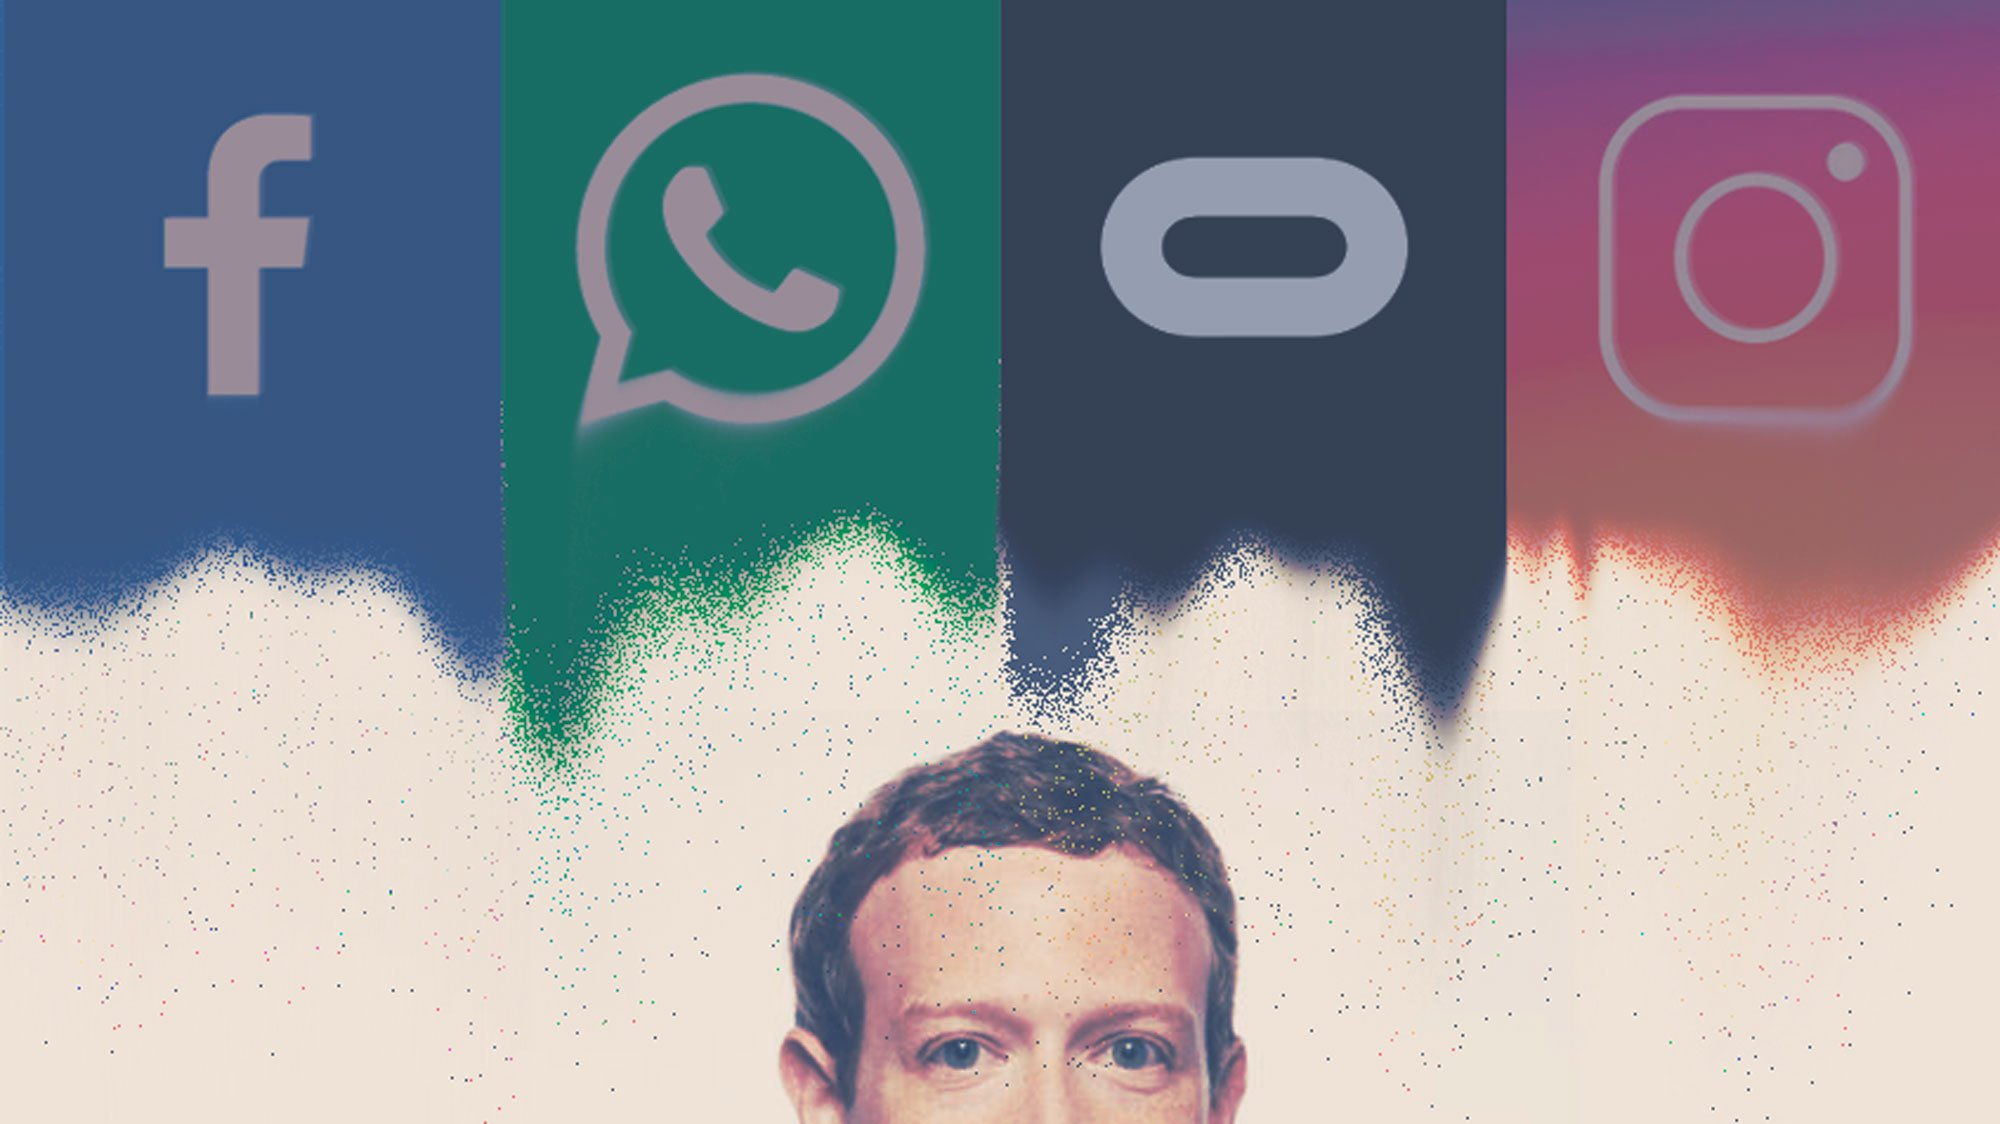 Zuckerberg's new privacy essay shows why Facebook needs to be broken up